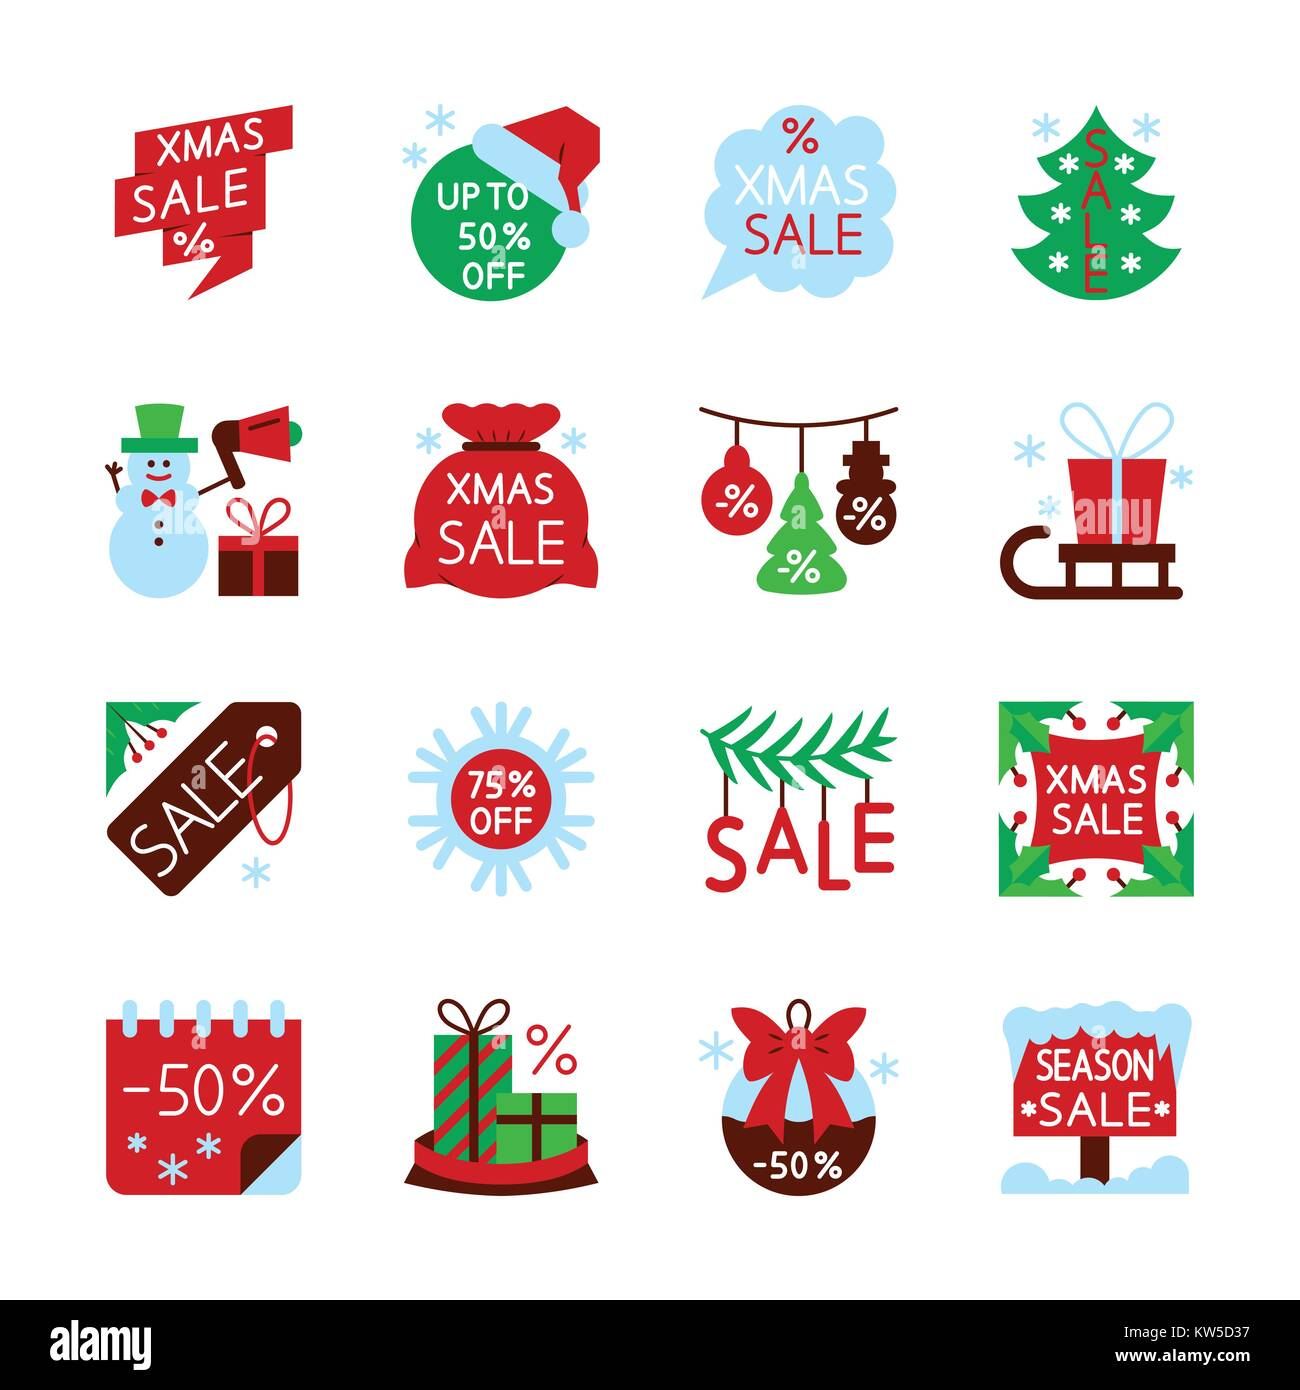 colorful season christmas sale icon set new year flat style clearance concept collection xmas color web card print office business banner label